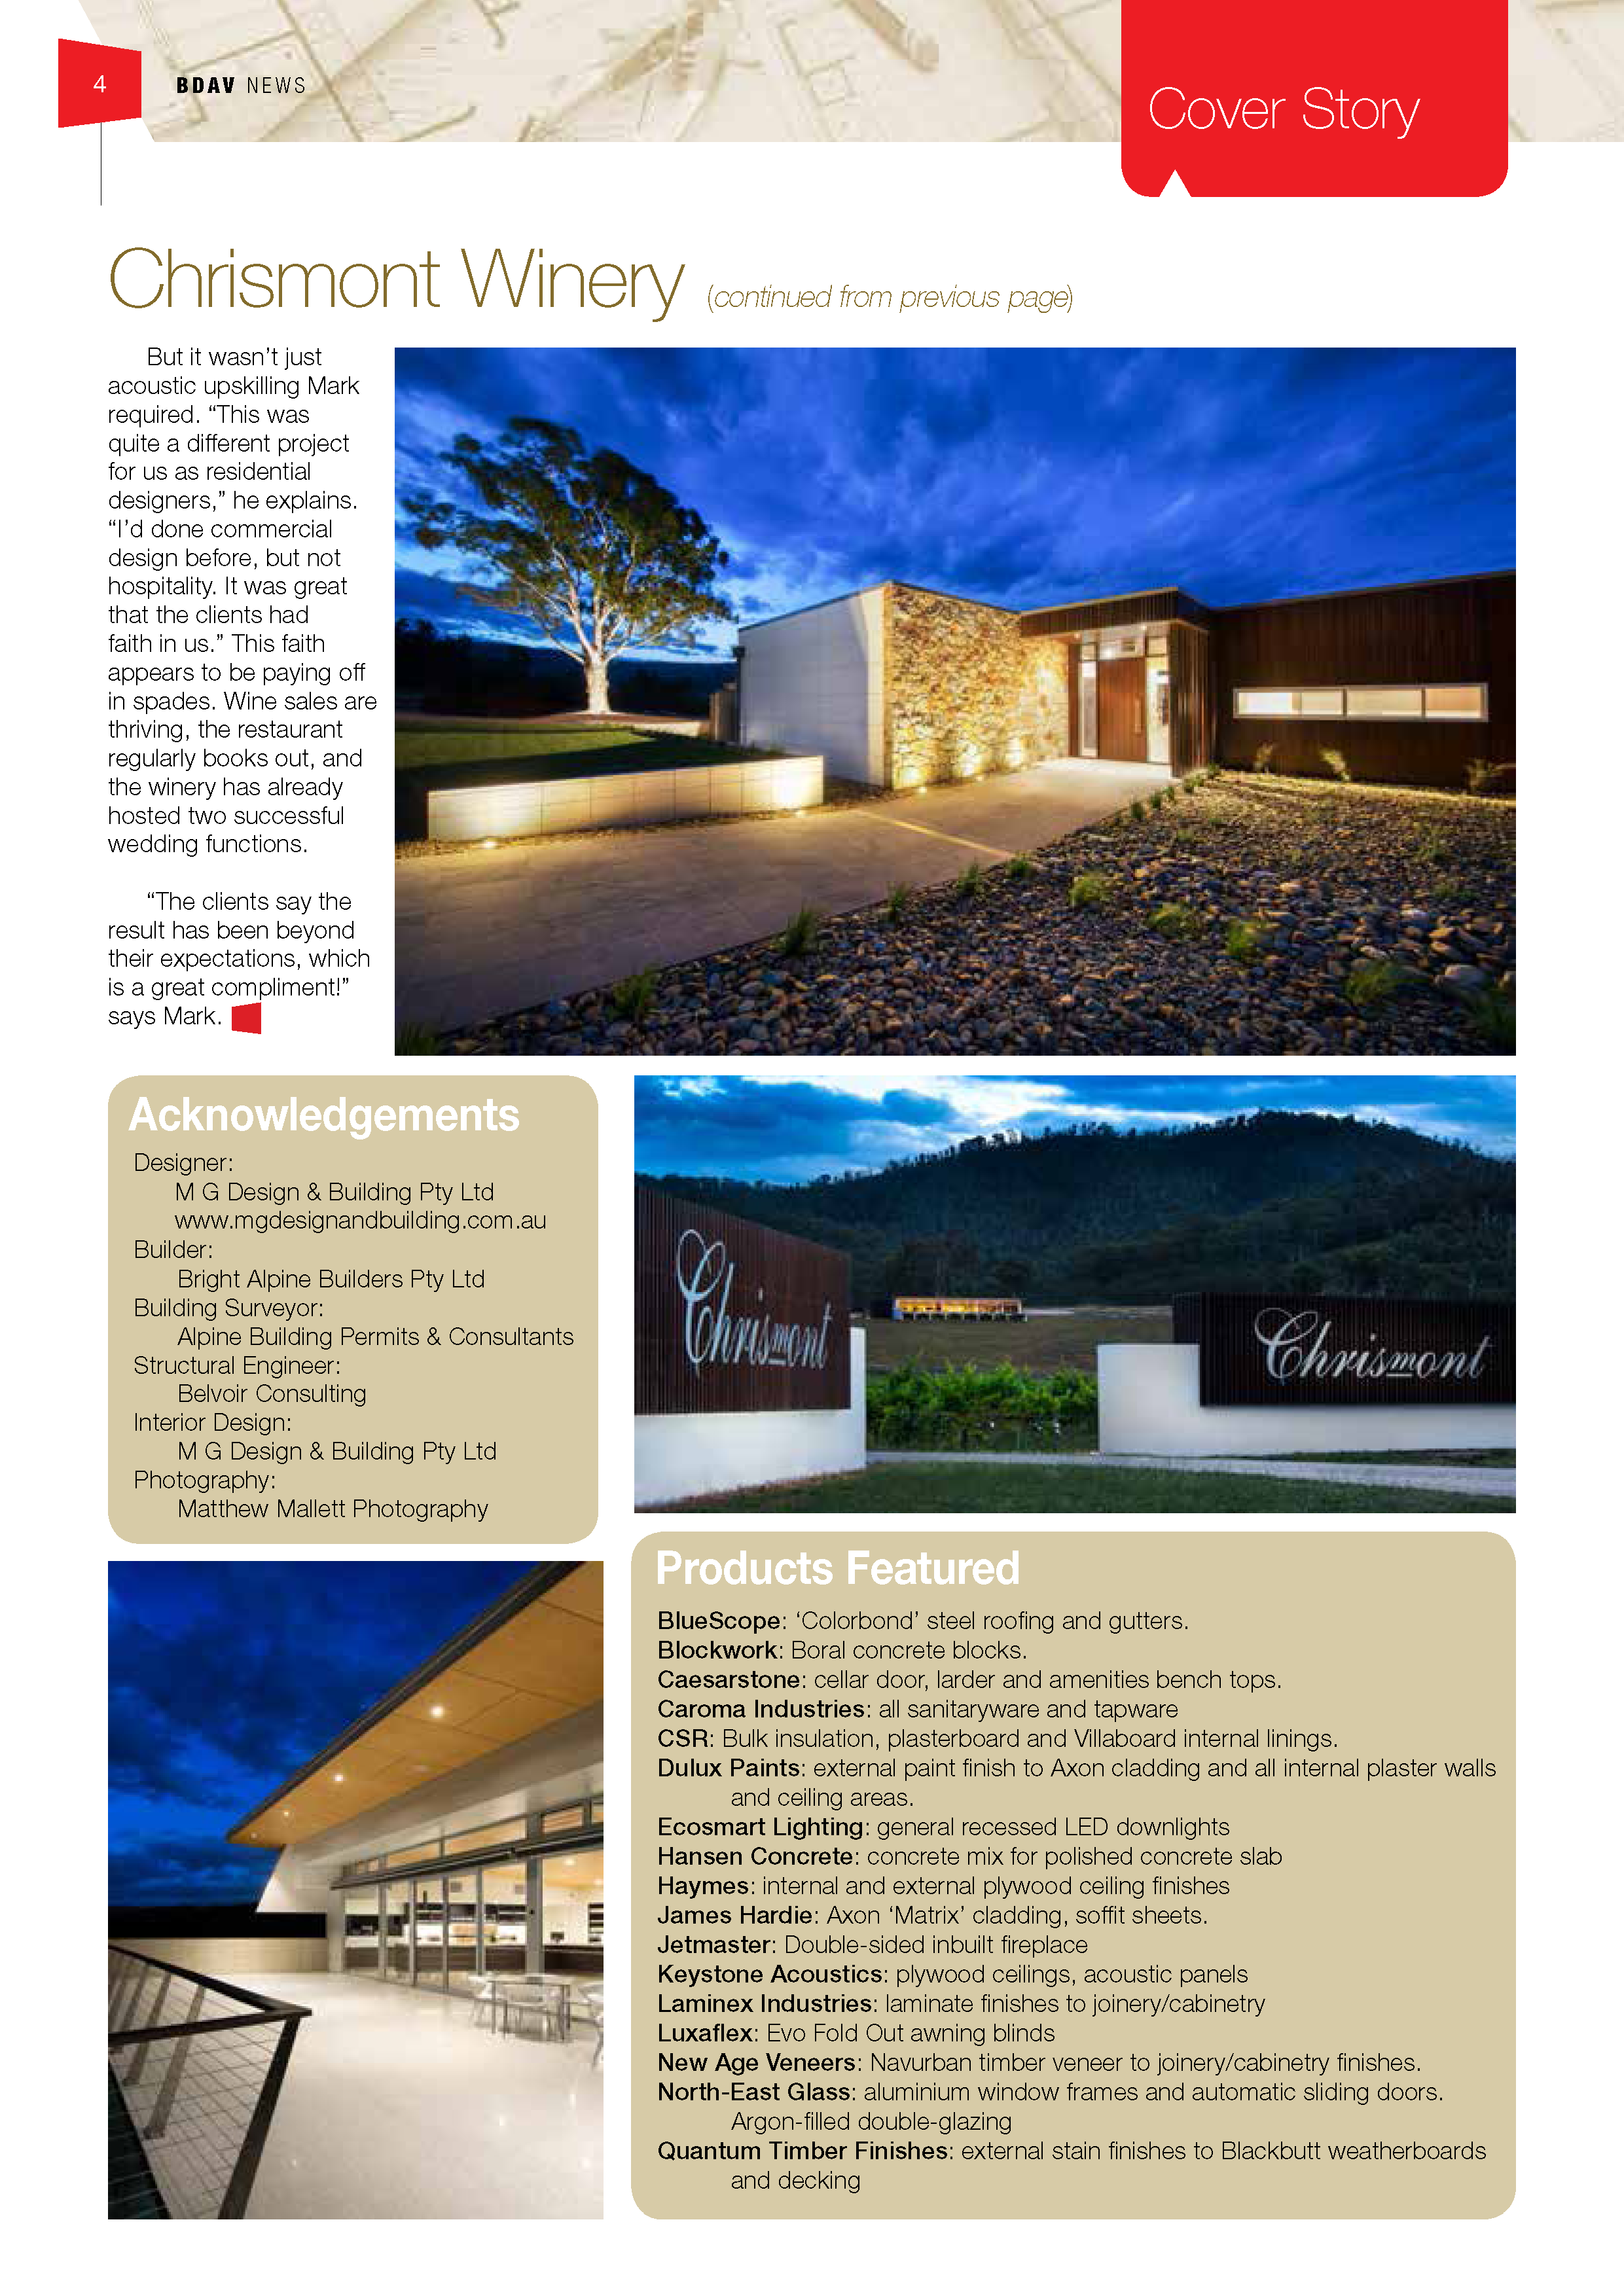 161003_BADV Magazine (Chismont Wines)_Page_3.png